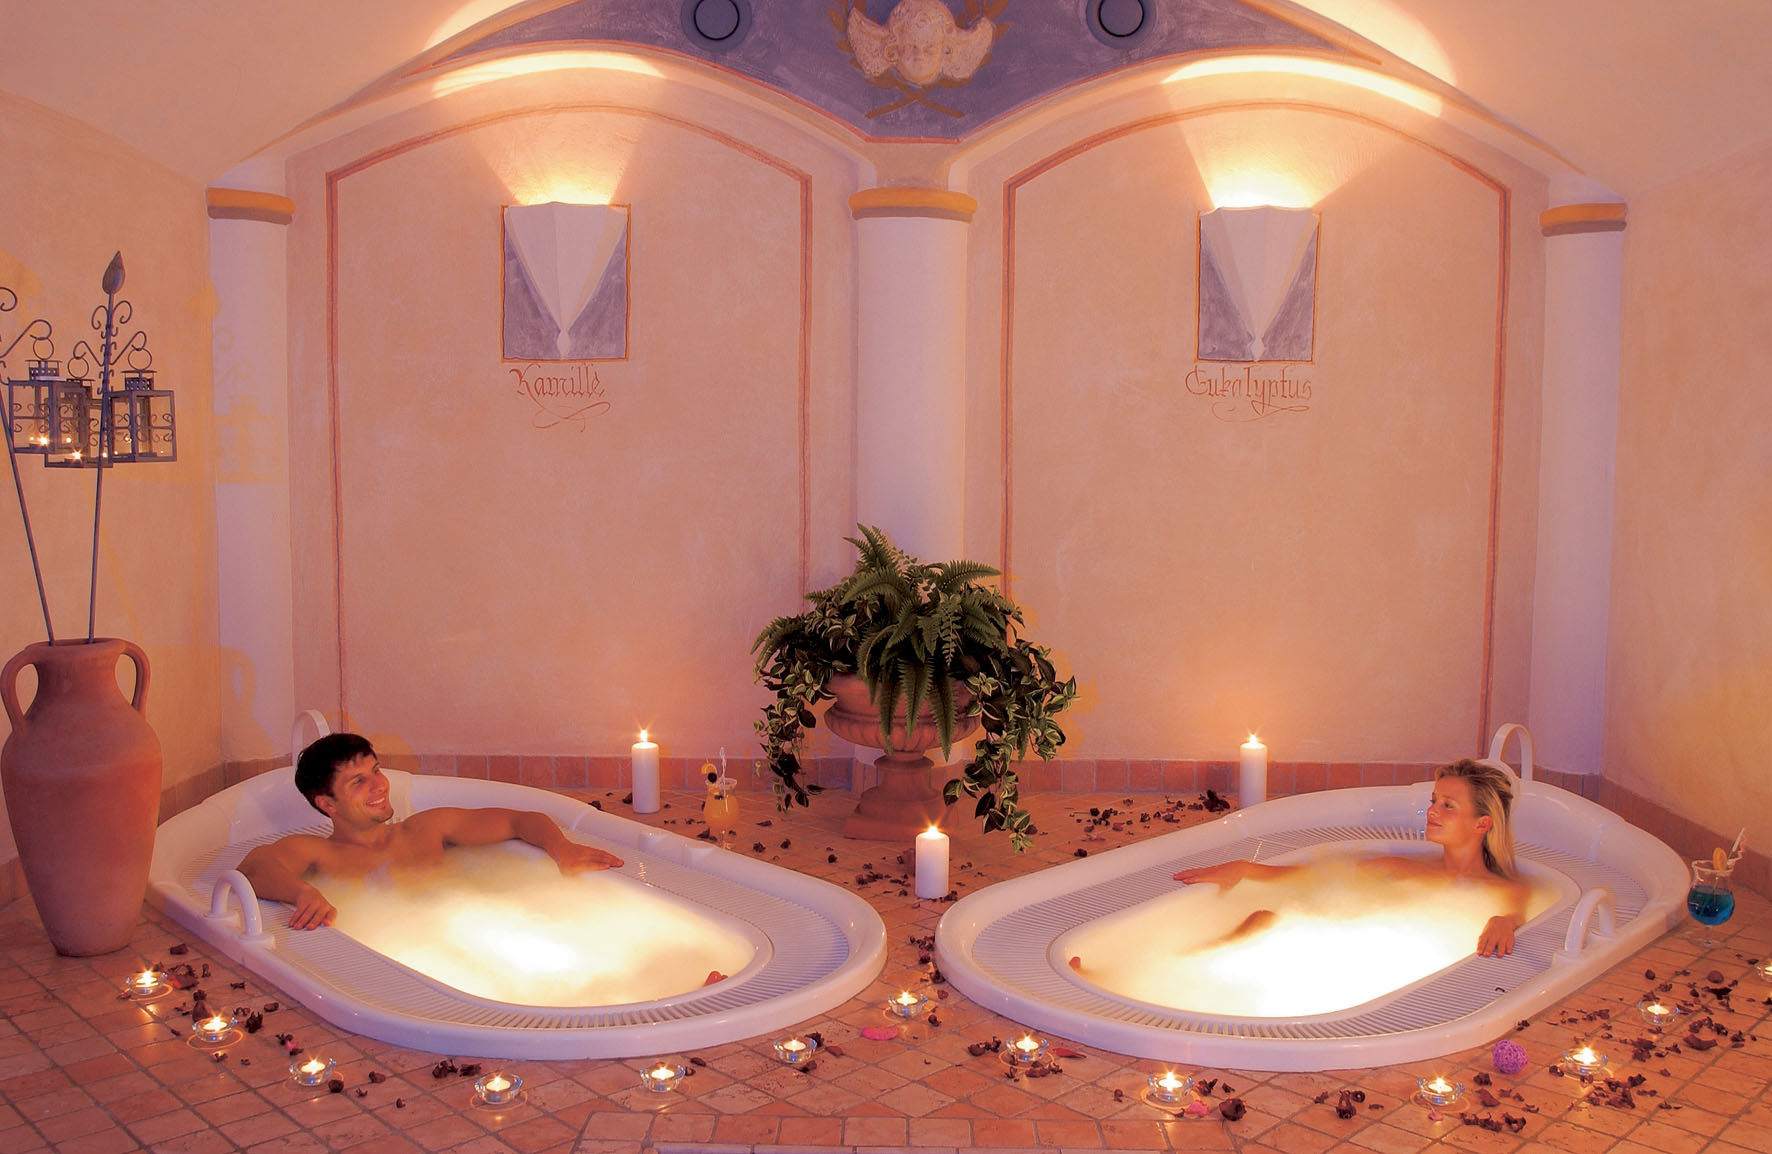 Weekend romantico due cuori e una spa fulltravel